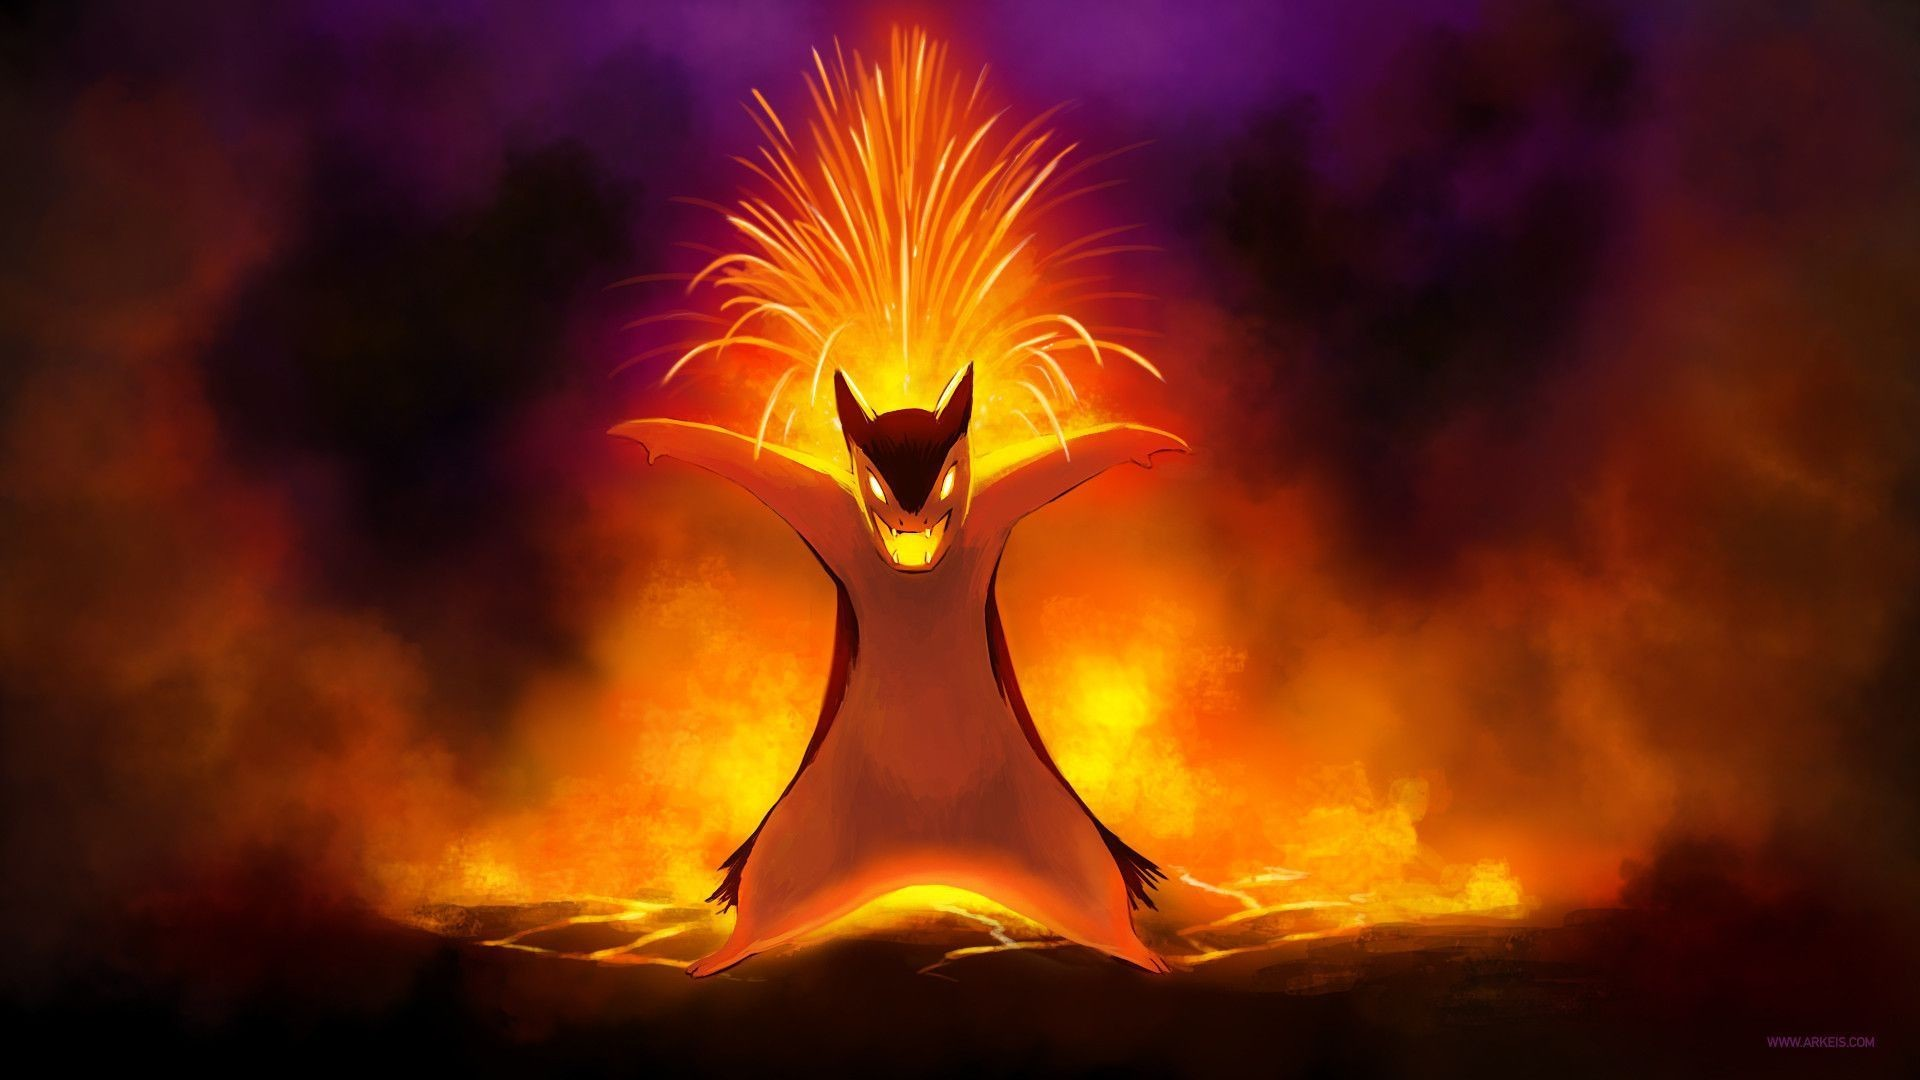 Res: 1920x1080, Typhlosion Wallpapers - Wallpaper Cave